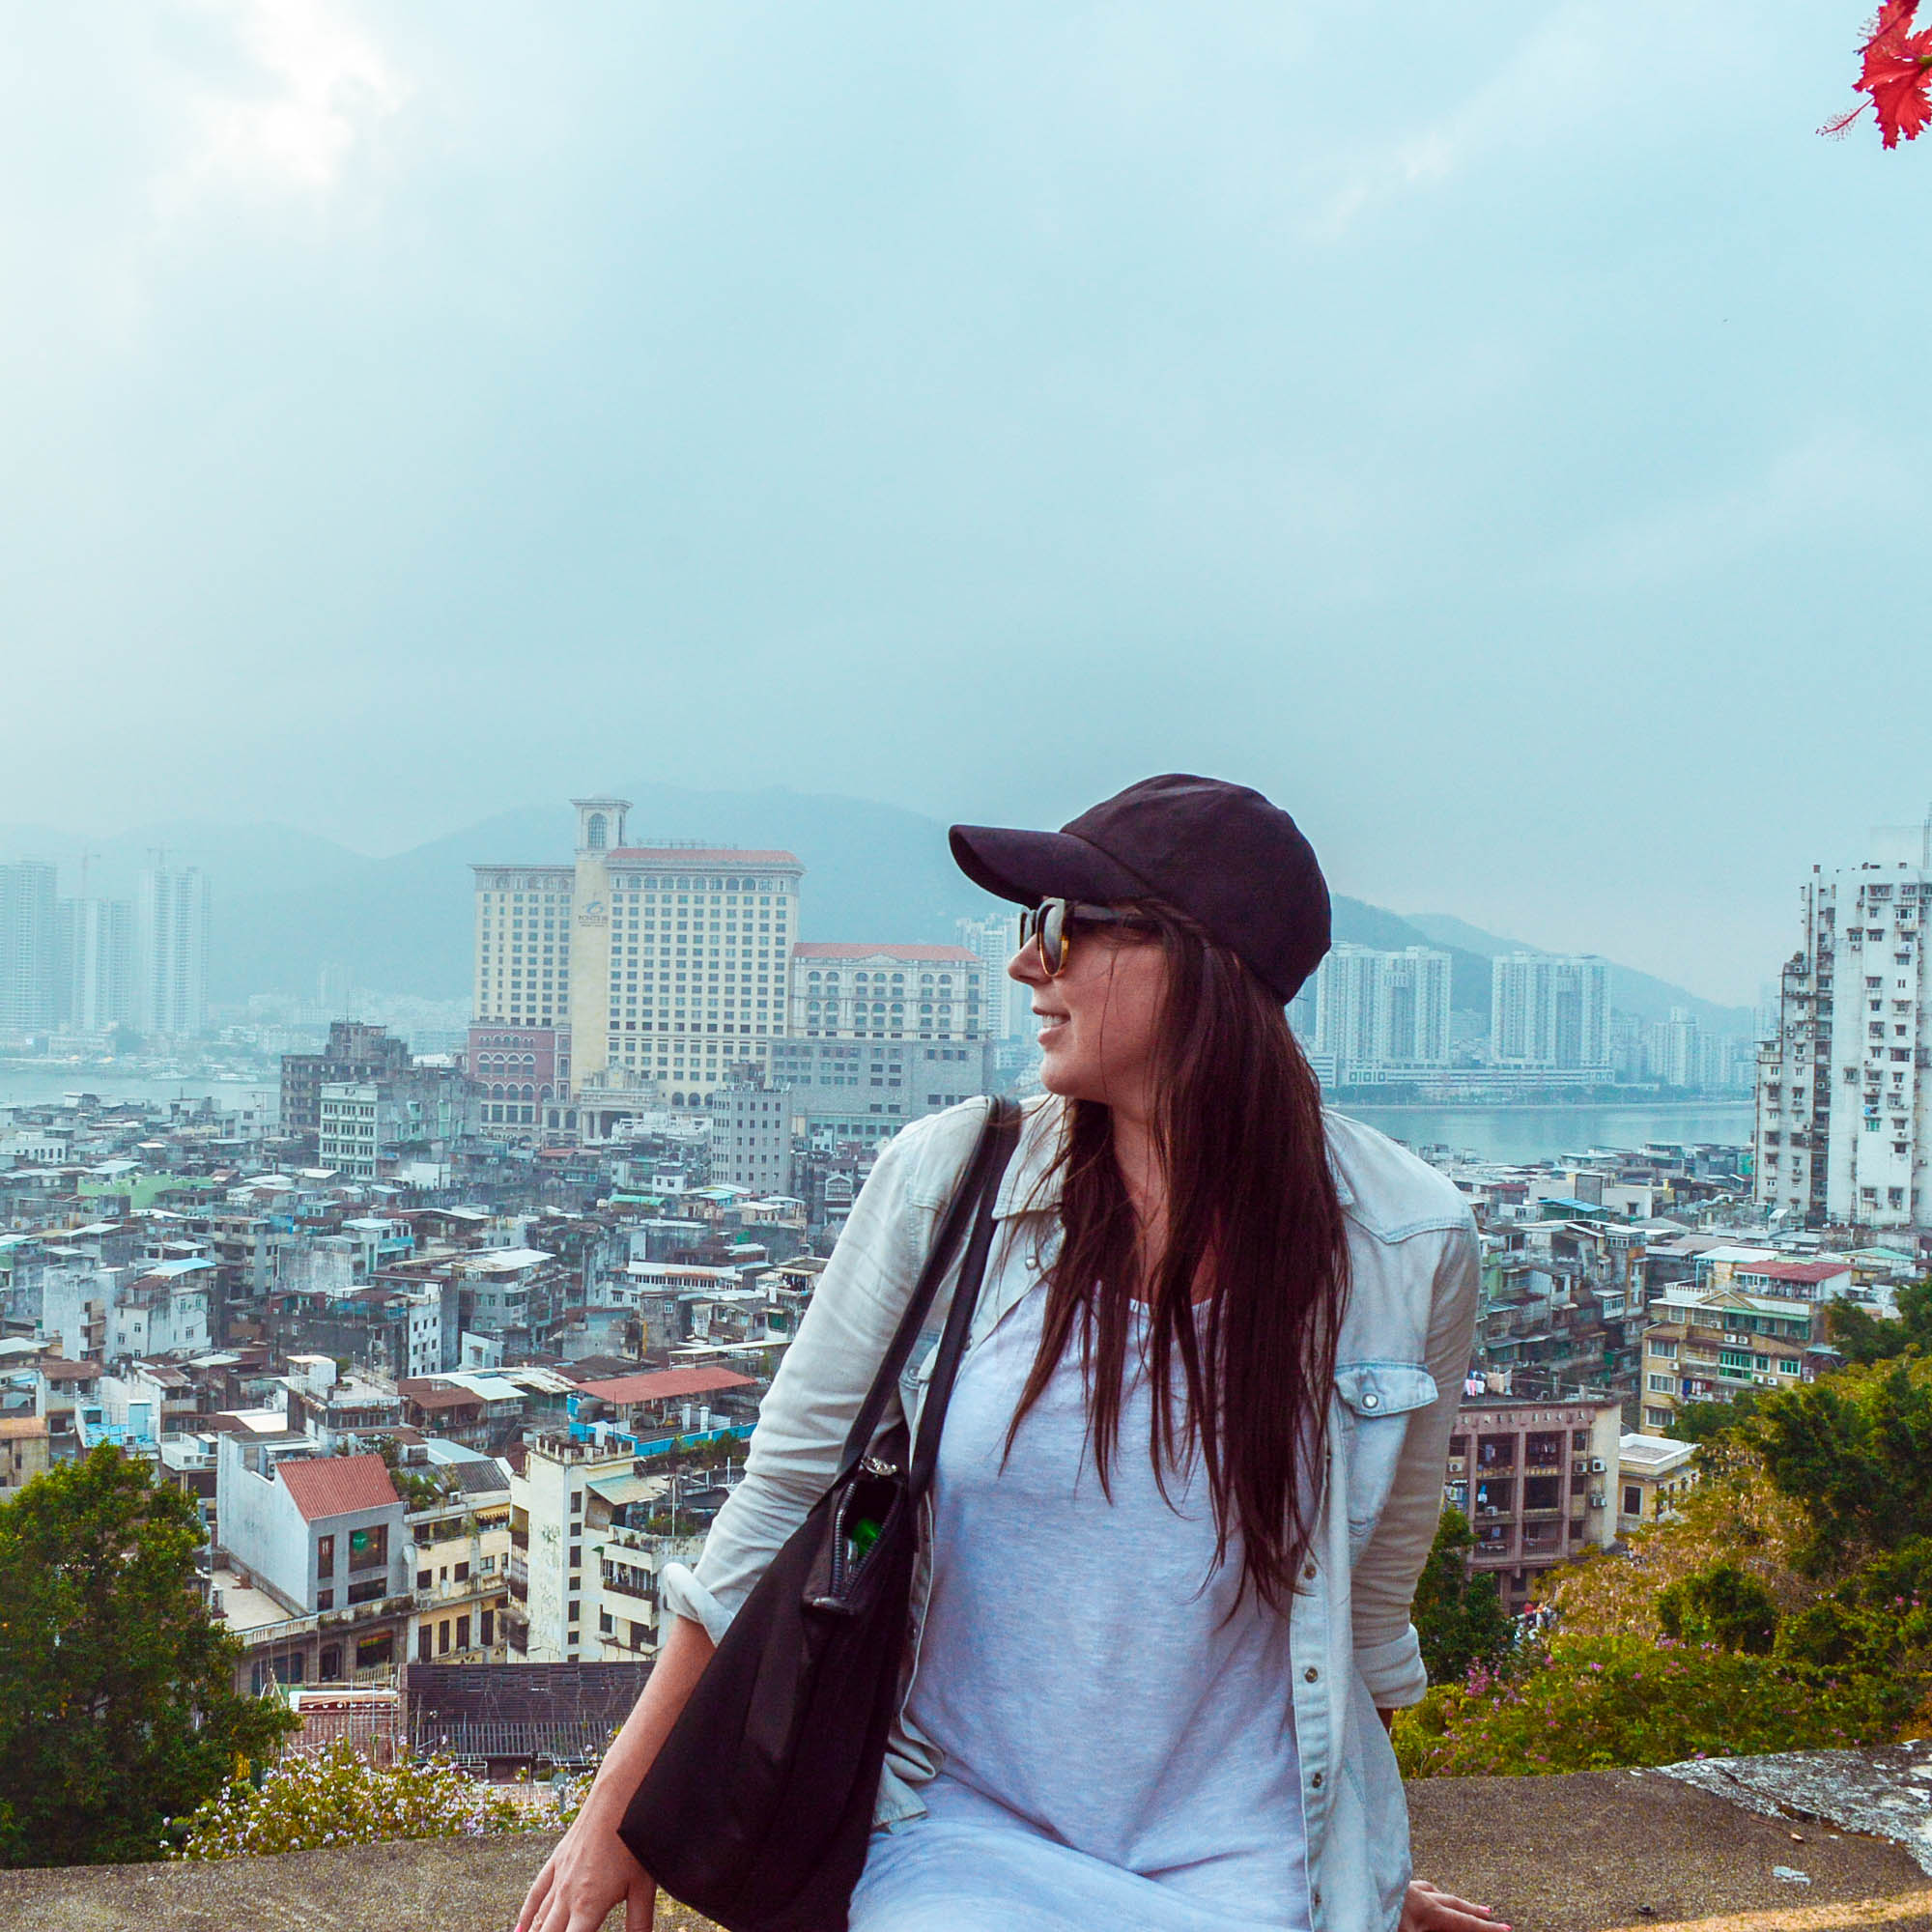 Macau Travel | 2017 Travel Year in Review + Travel and Blog Goals for 2018 | goseekexplore.com